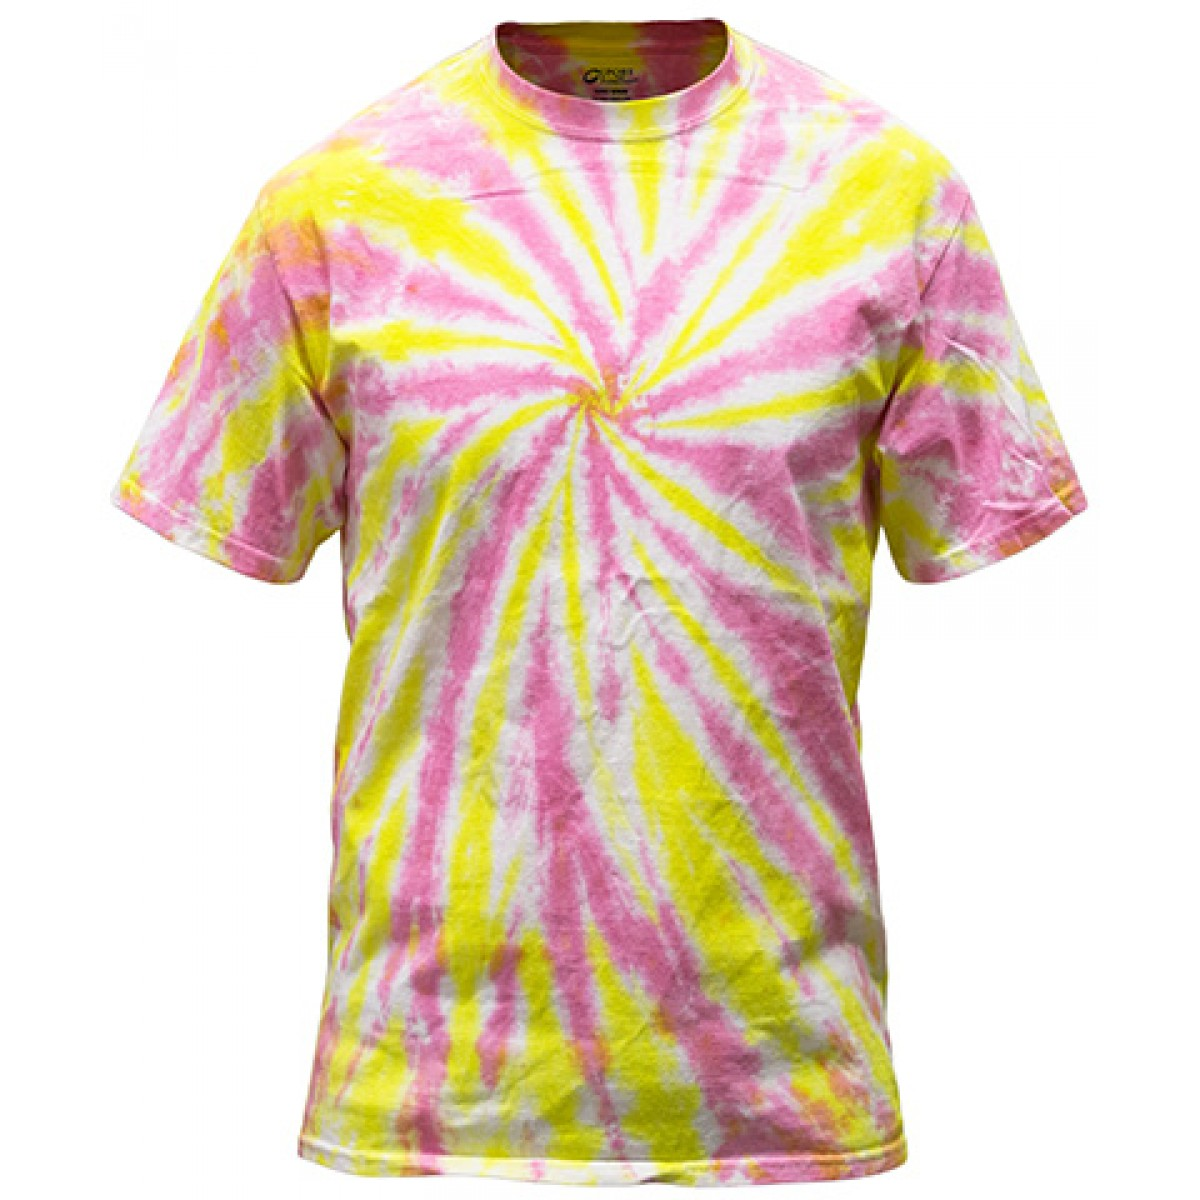 Multi-Color Tie-Dye Tee -Pink/Yellow-S